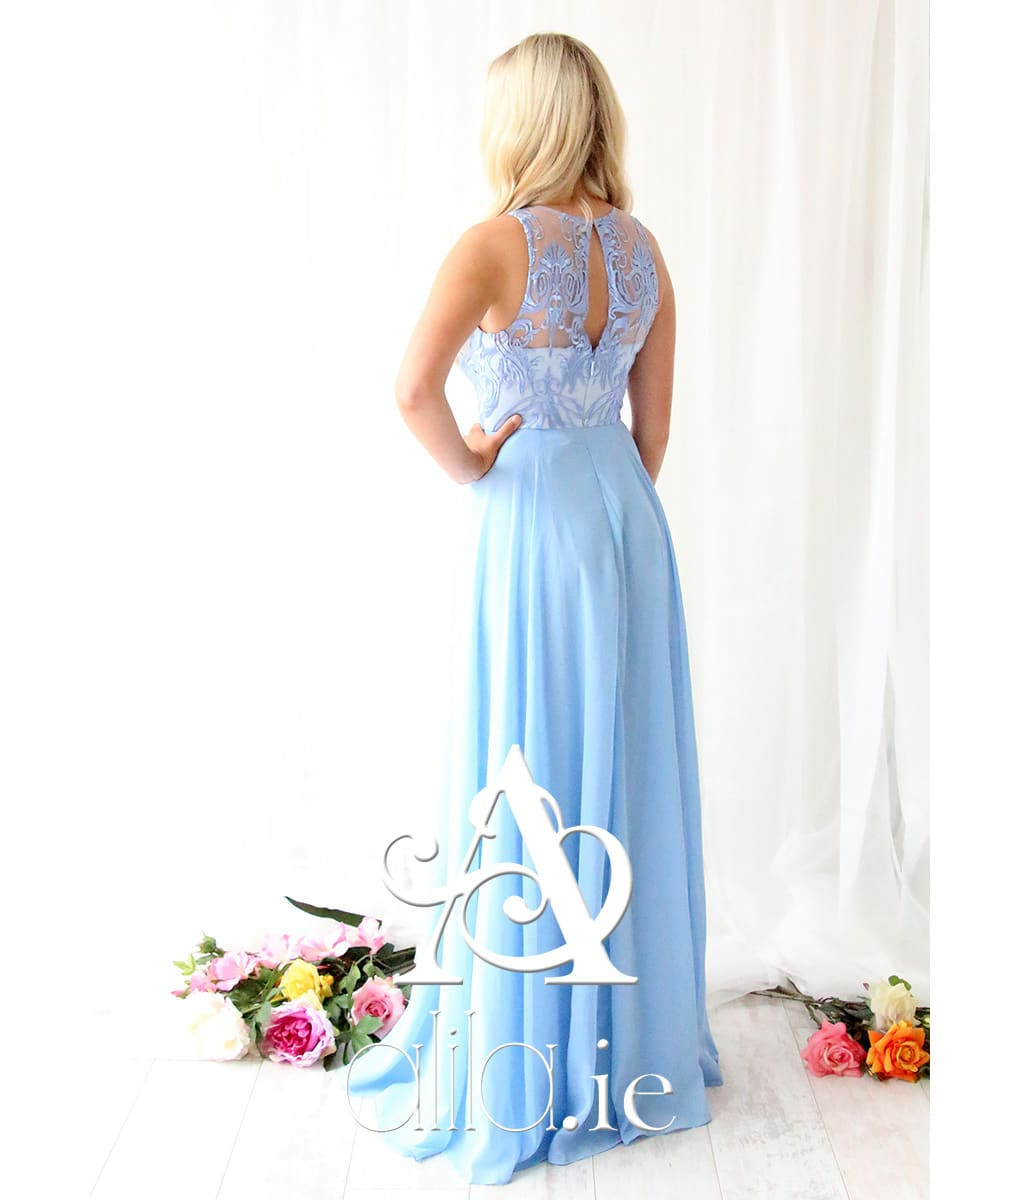 Alila-Light-Blue-Chiffon-Embroidered-Debs-Dress-Bariano